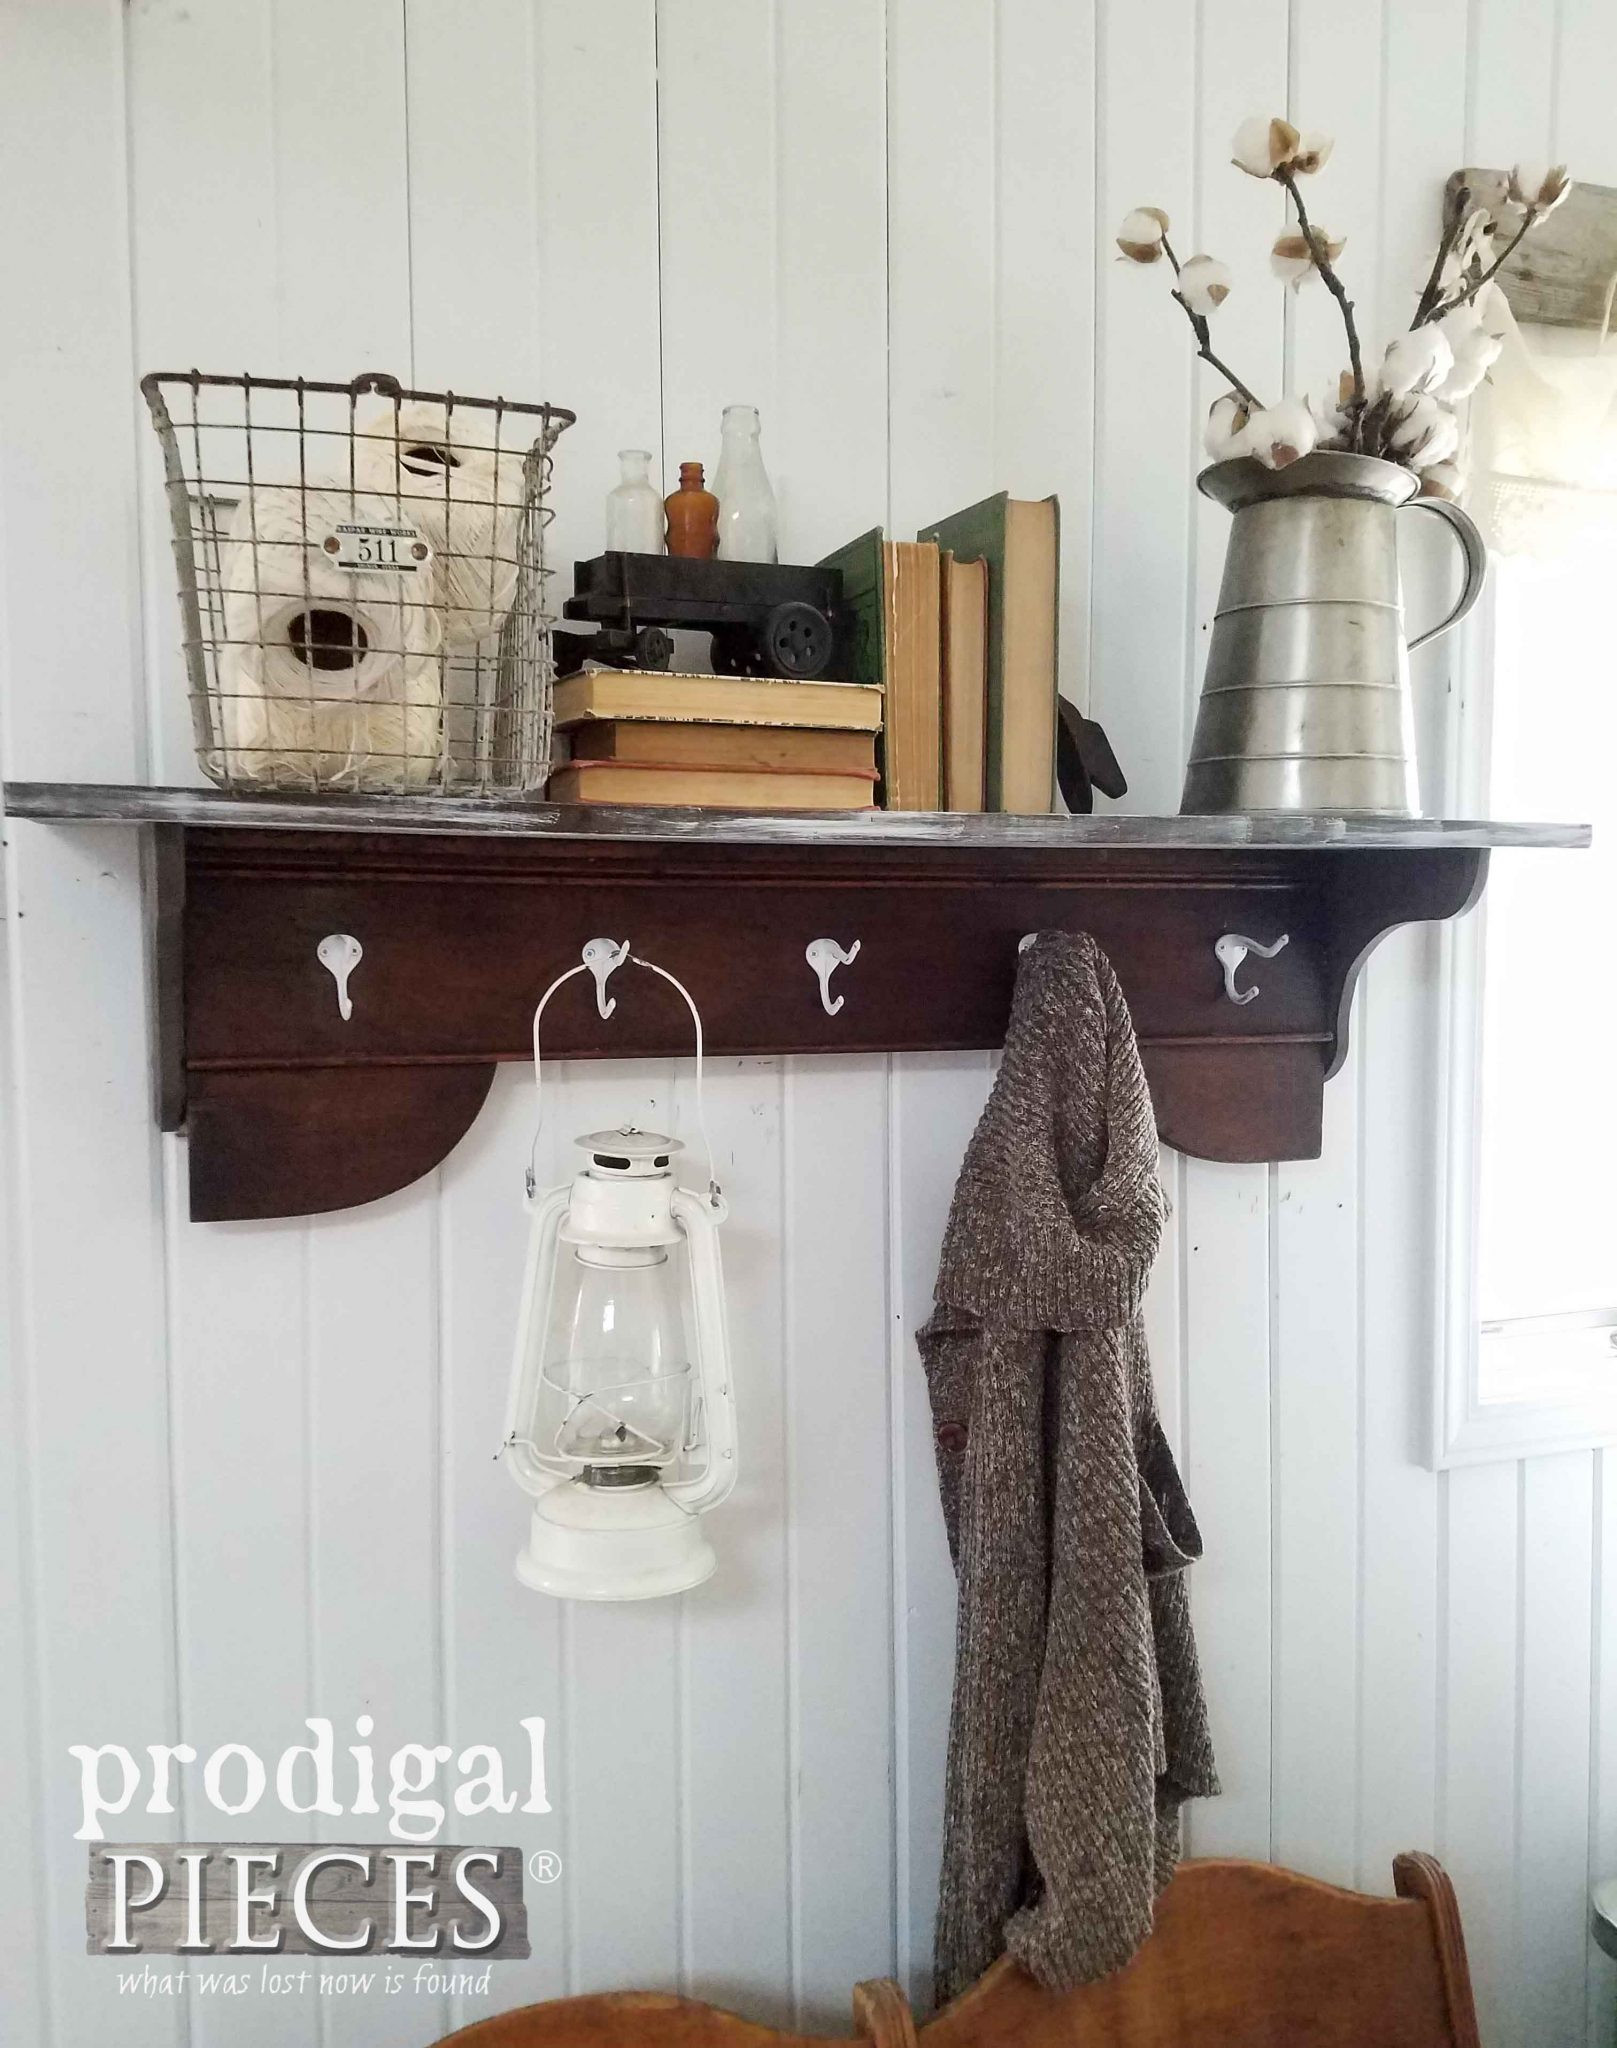 Best ideas about DIY Coat Racks . Save or Pin Repurposed Coat Rack DIY by a PreTeen Prodigal Pieces Now.